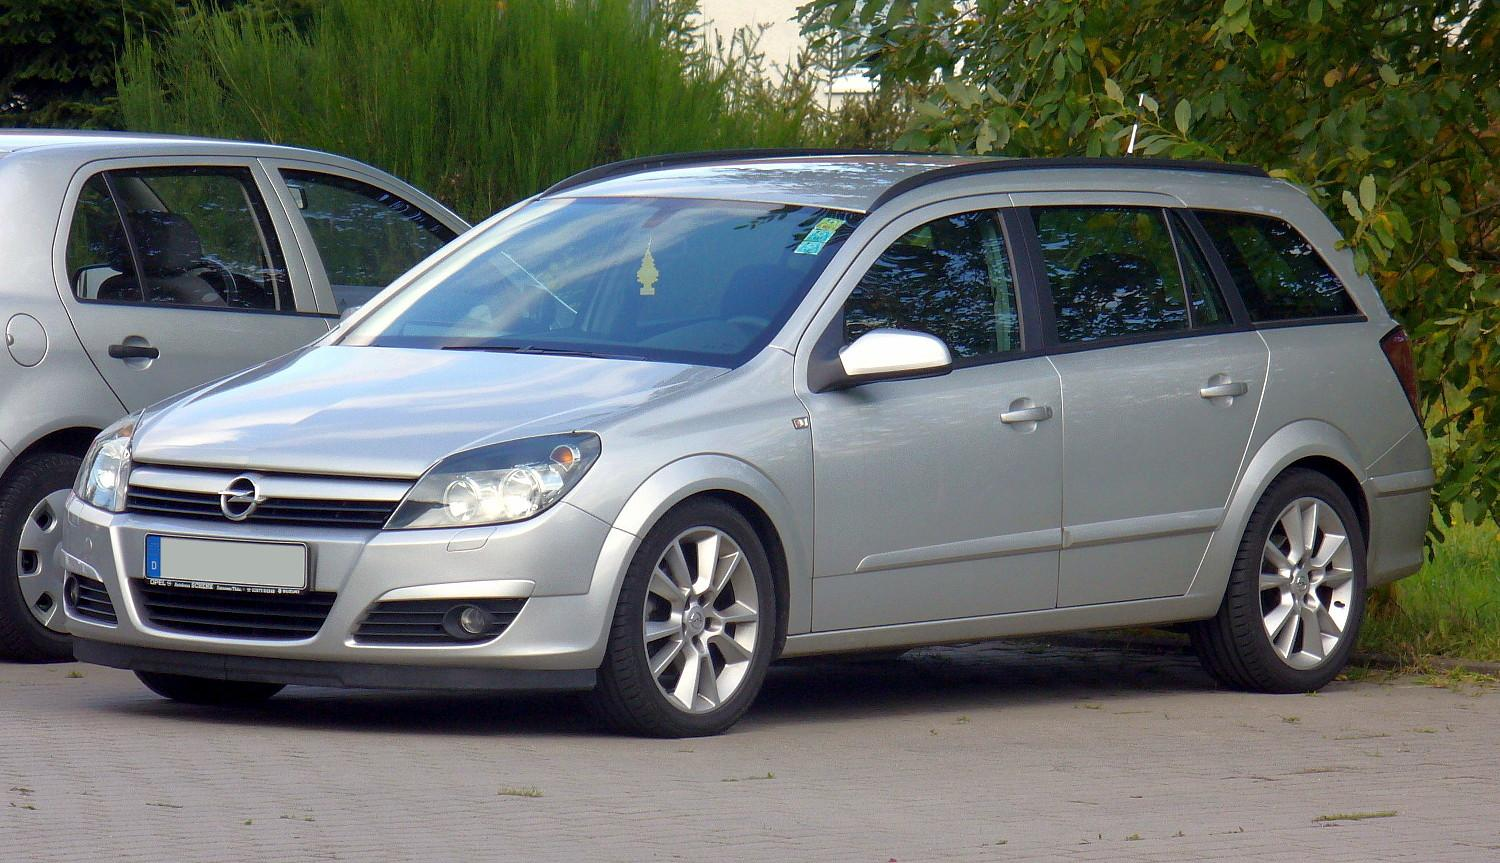 2007 opel astra h caravan pictures information and specs auto. Black Bedroom Furniture Sets. Home Design Ideas